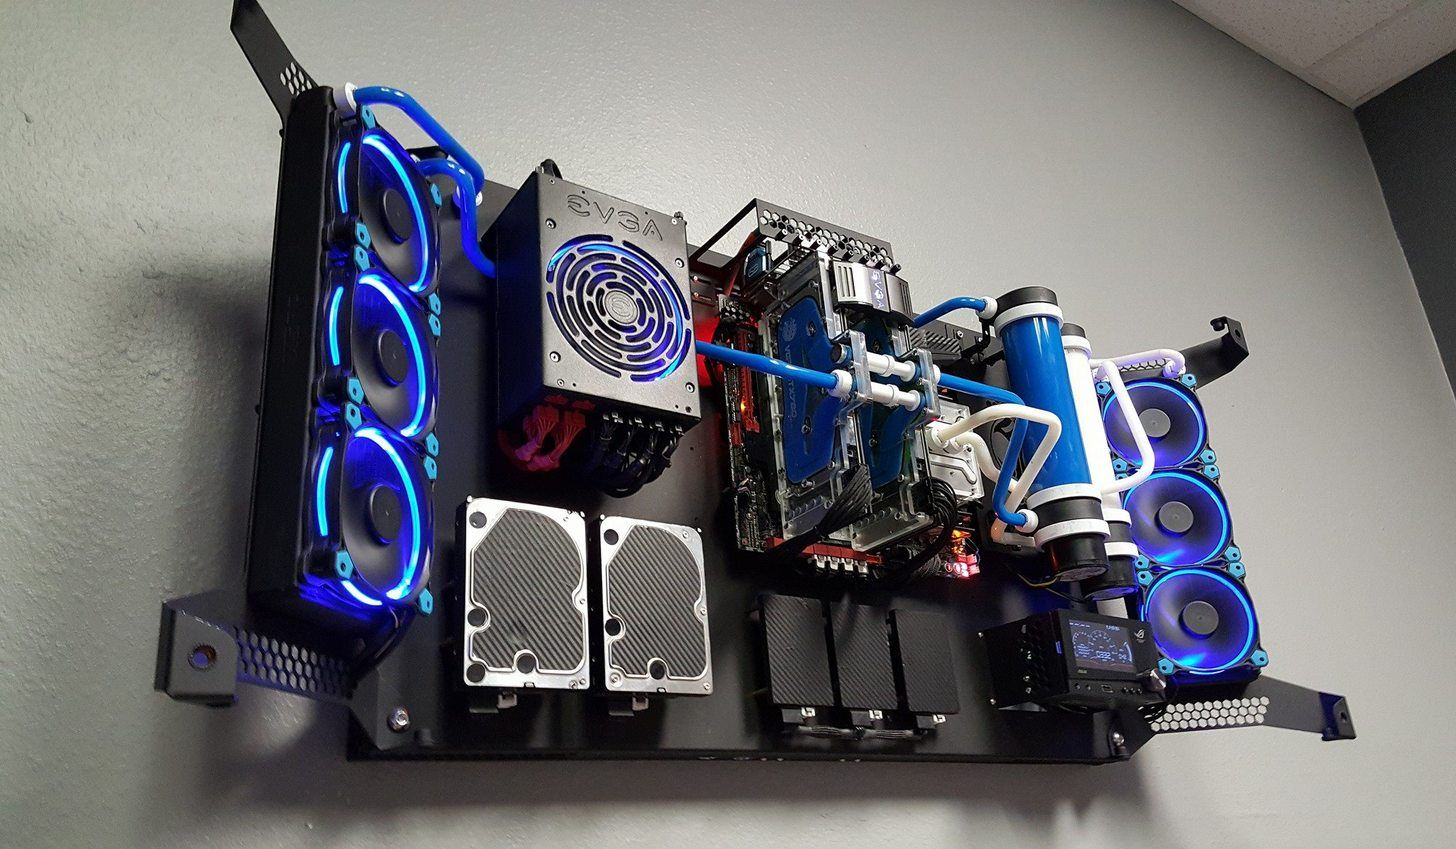 Evolution Of Feros wall mounted PC case in 2018 | PC Rigs ...